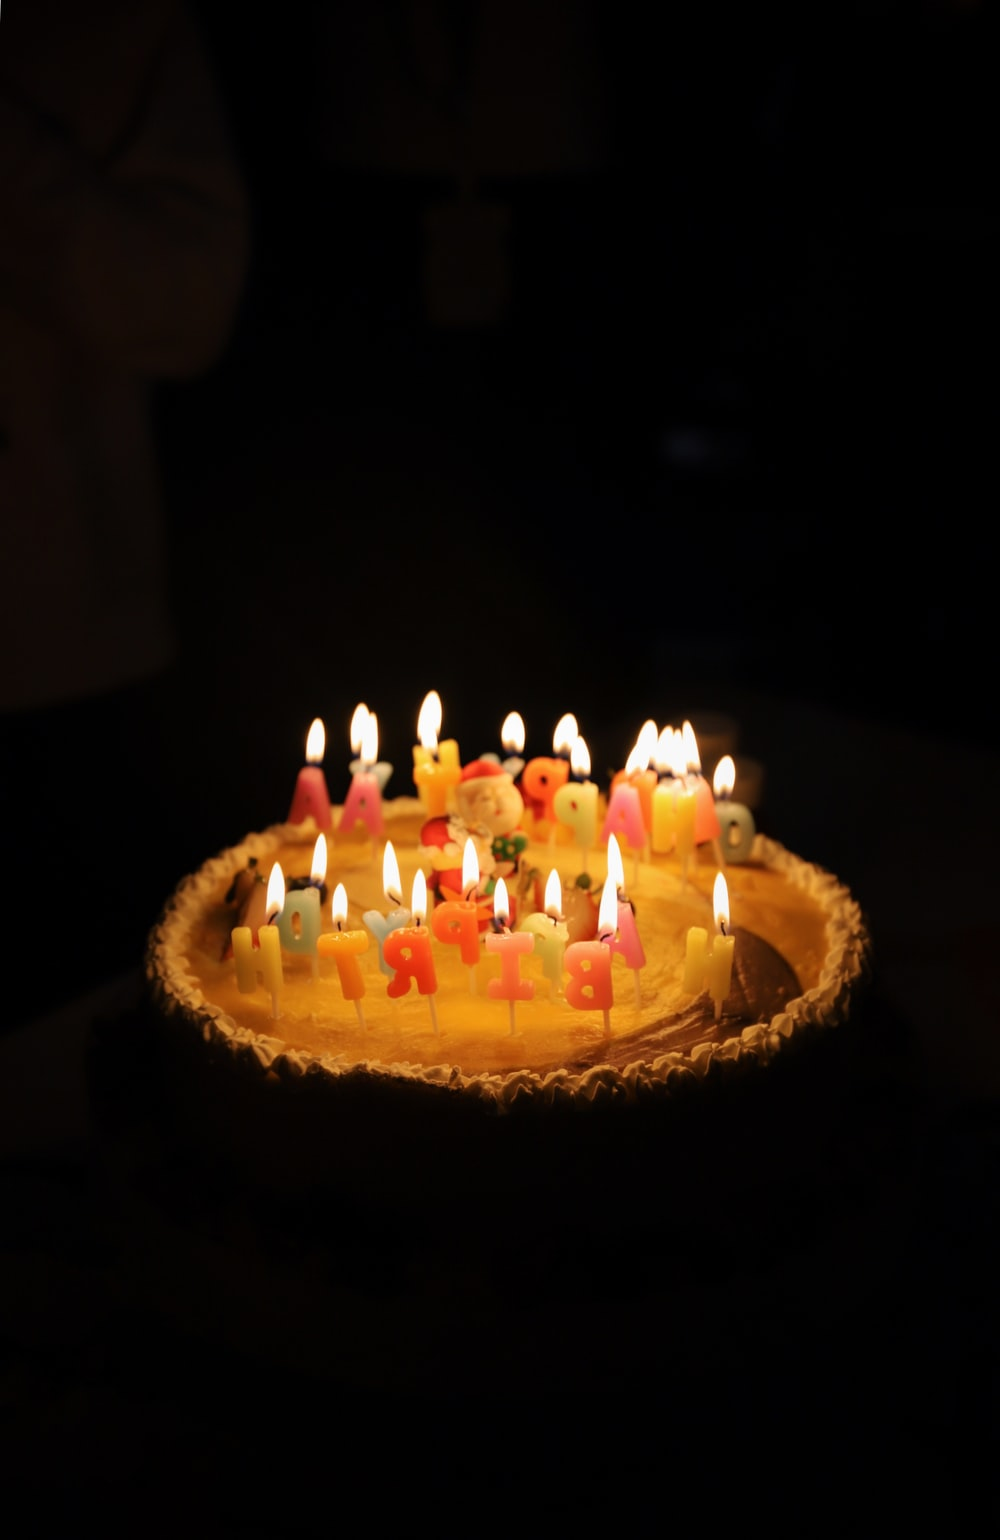 20th Birthday Cake Pictures Hd Download Free Images On Unsplash